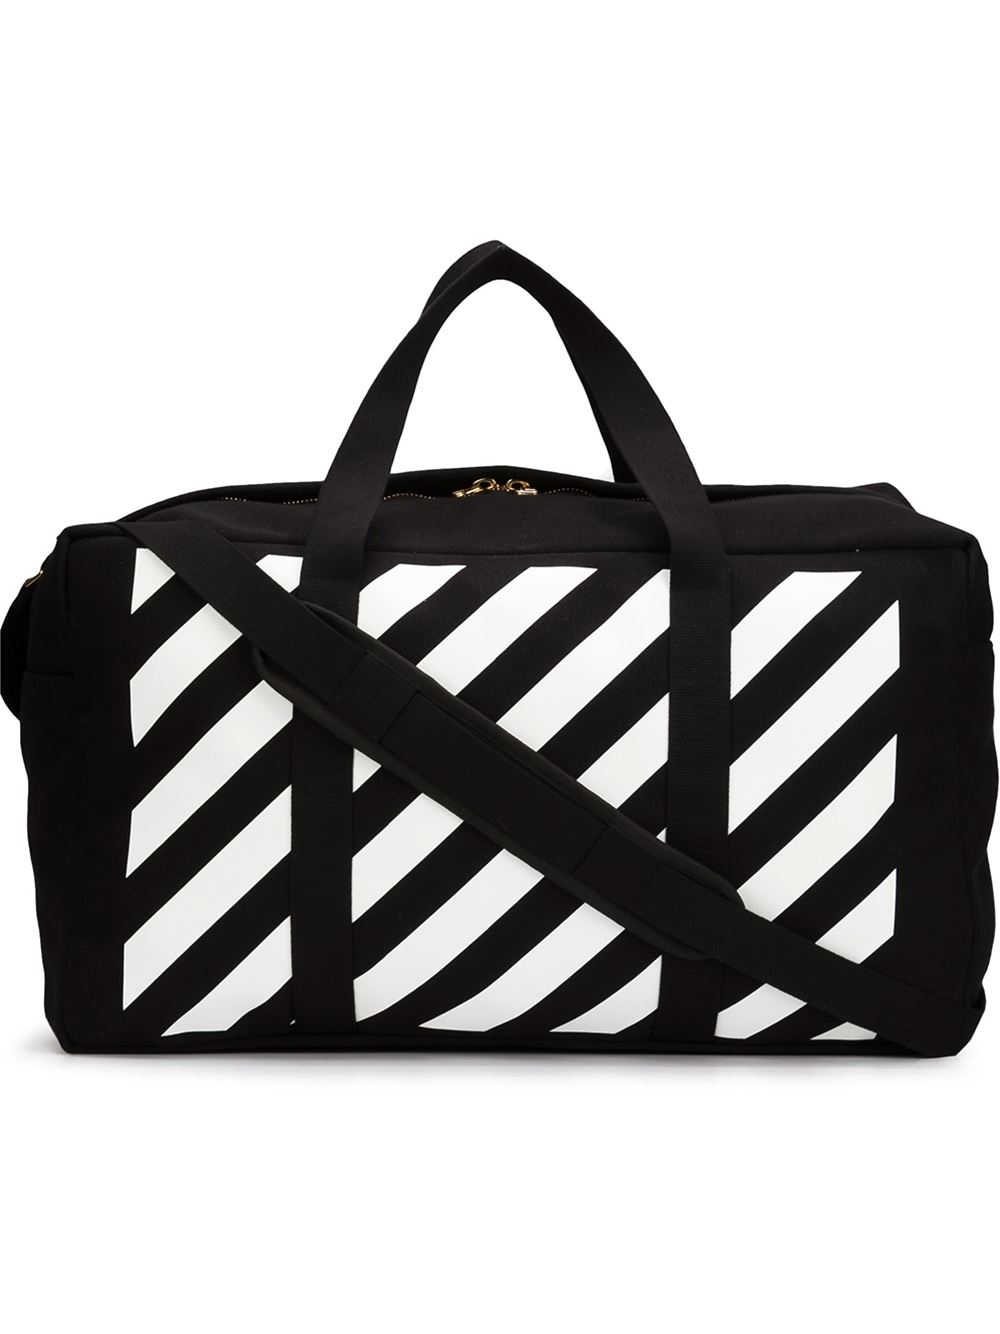 c95c8a8b3cb1 lyst off white c o virgil abloh black and white canvas duffle bag in ...